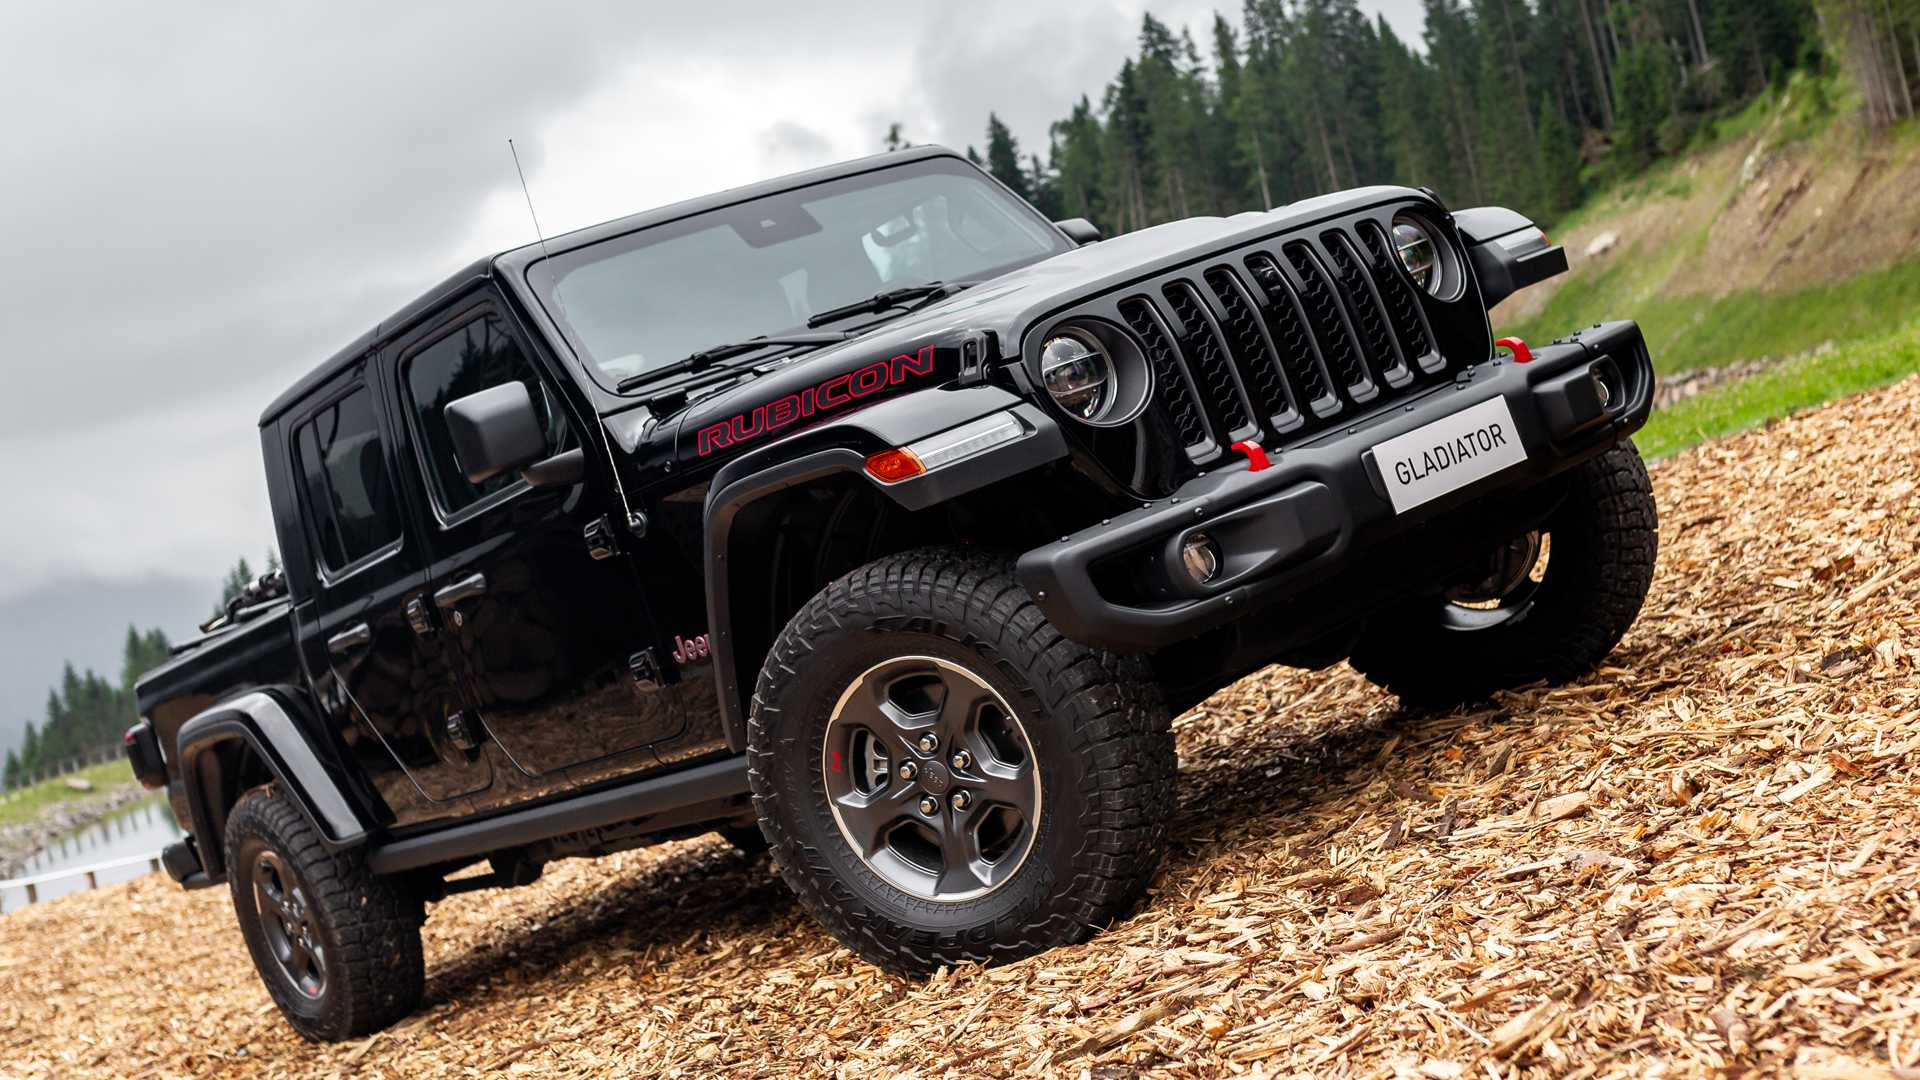 2021 Jeep Gladiator Specs, Diesel, Release Date, And Price >> Jeep Gladiator Arrives In Europe With 260 Hp V6 Diesel Engine